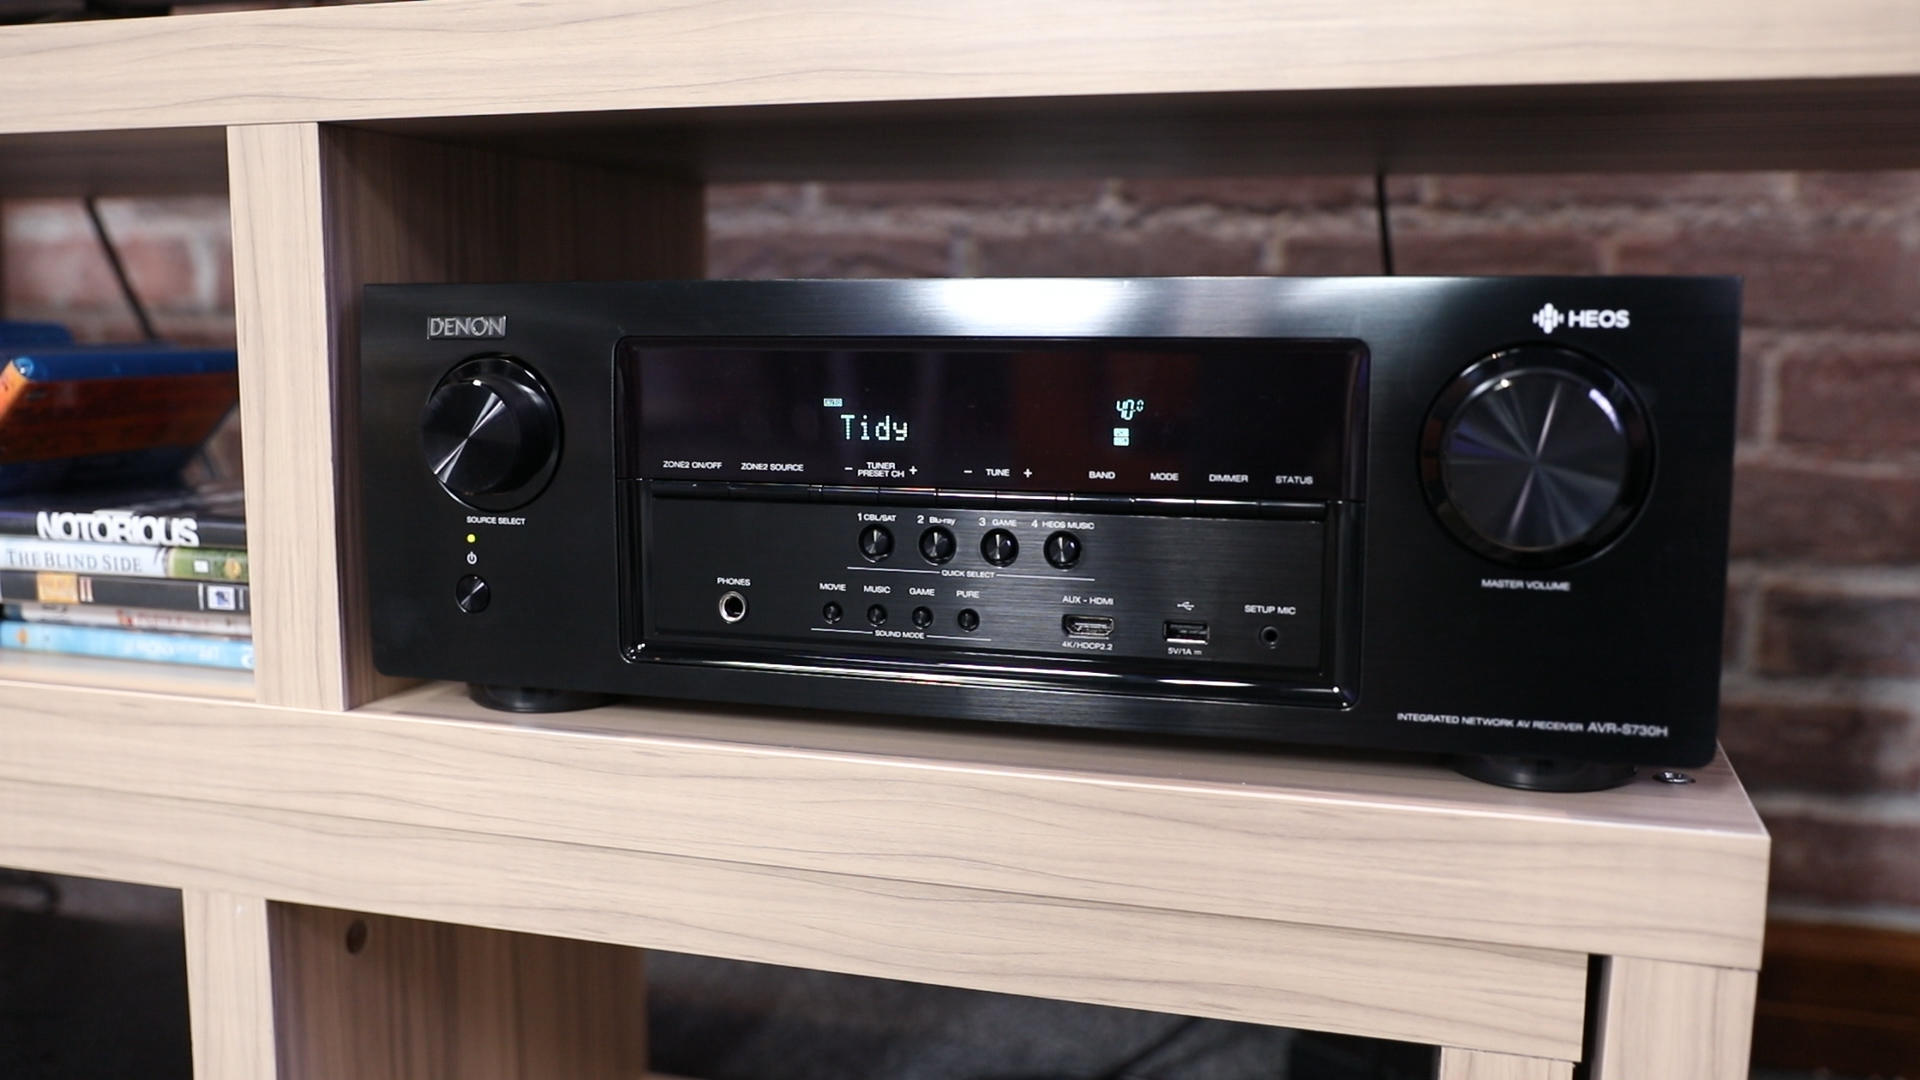 Video: Denon's AVR-S930H offers top features and performance on a budget